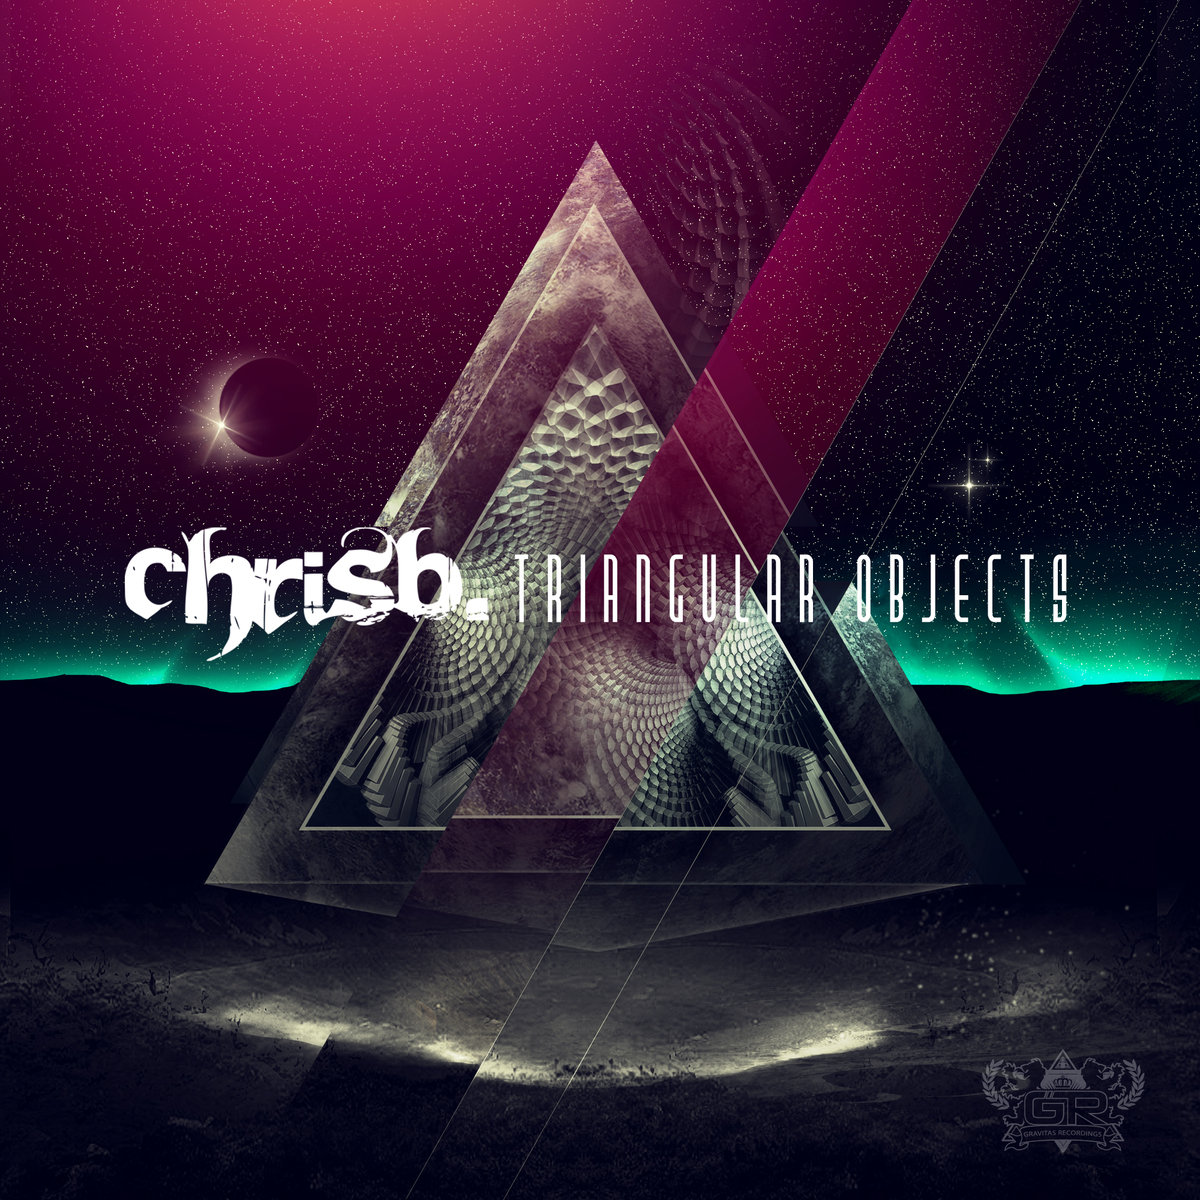 ChrisB. - Fluid Dynamics @ 'Triangular Objects' album (dubstep, electronic)